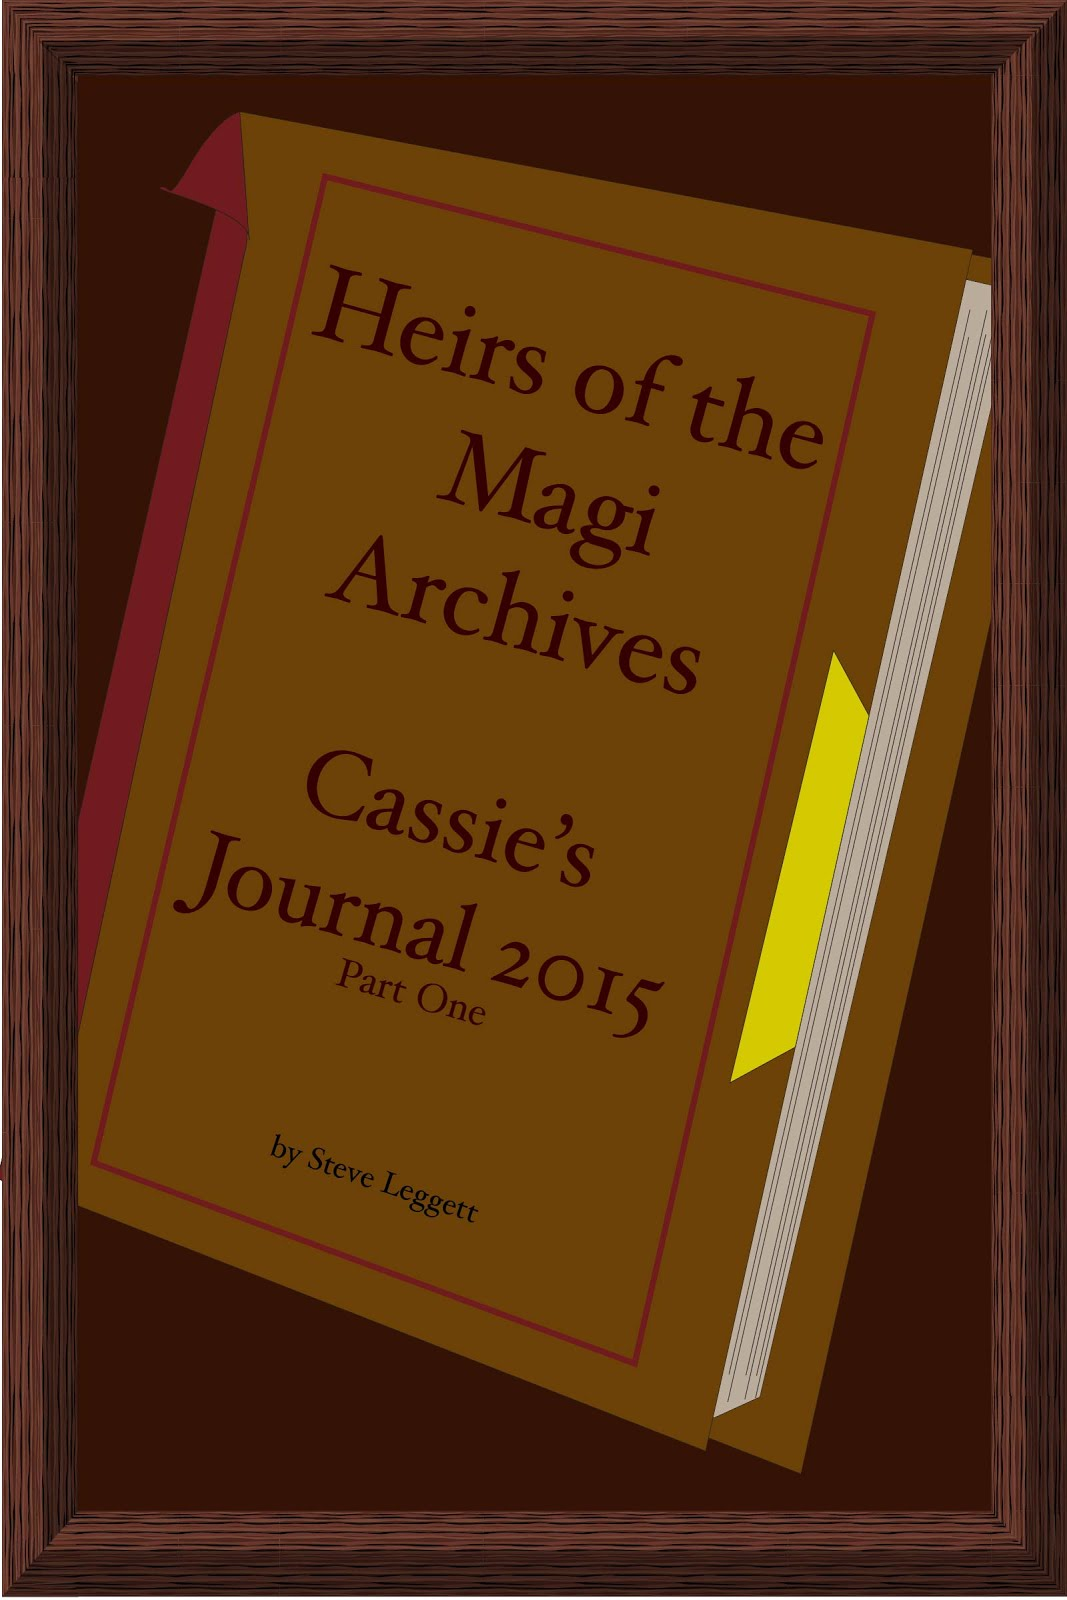 Cassie's Journal 2015 - Part One